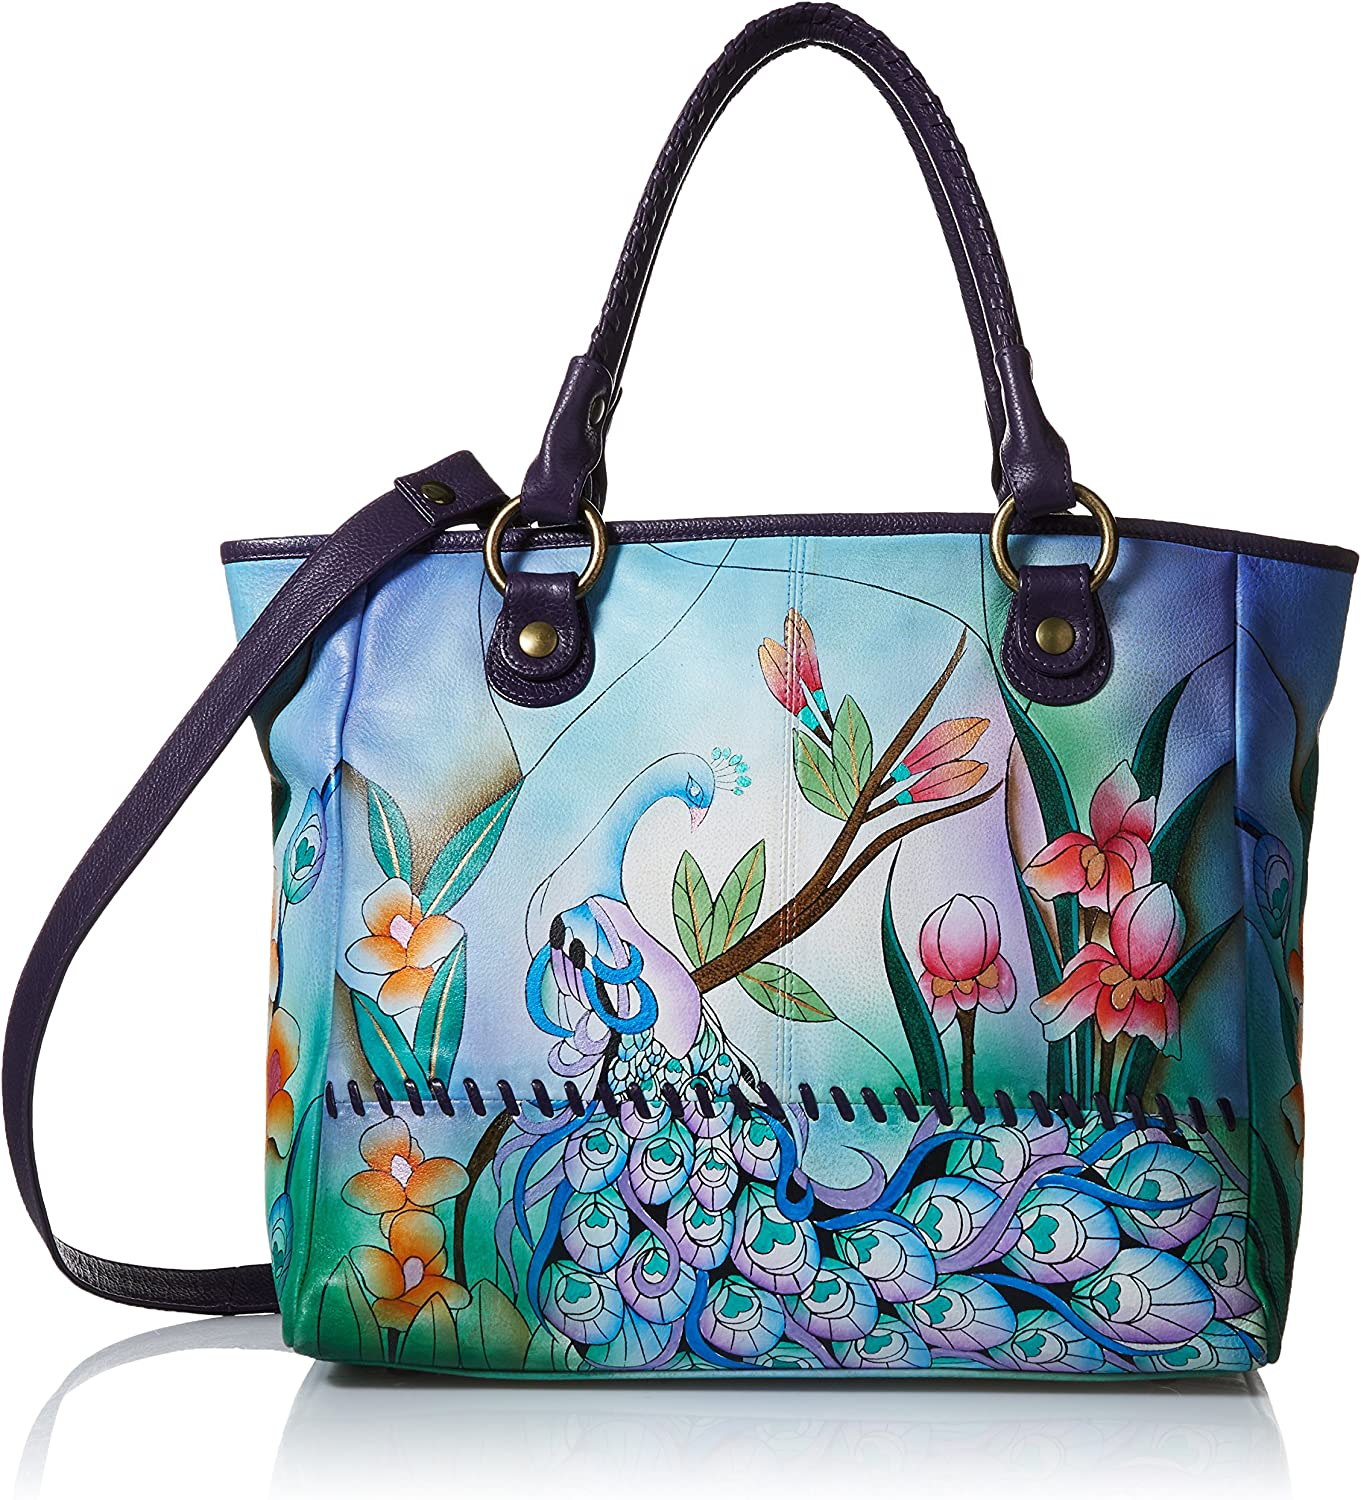 Anna by Anuschka Women's Genuine Leather Large Classic Tote Bag | Hand Painted Original Artwork